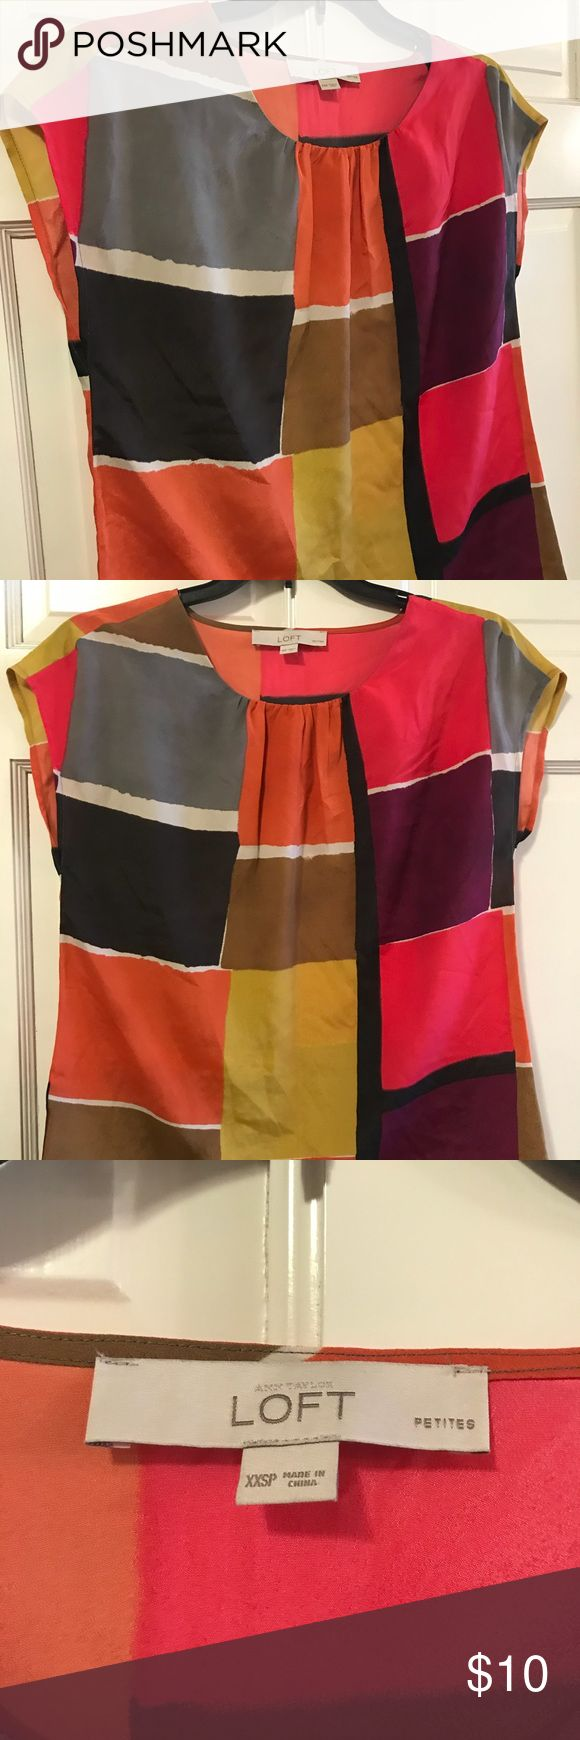 LOFT Color Block Top Make a statement with this colorful top!   LOFT Short Sleeve Blouse   Size: XXS Petite  From a Smoke Free Home. Thanks! LOFT Tops Blouses